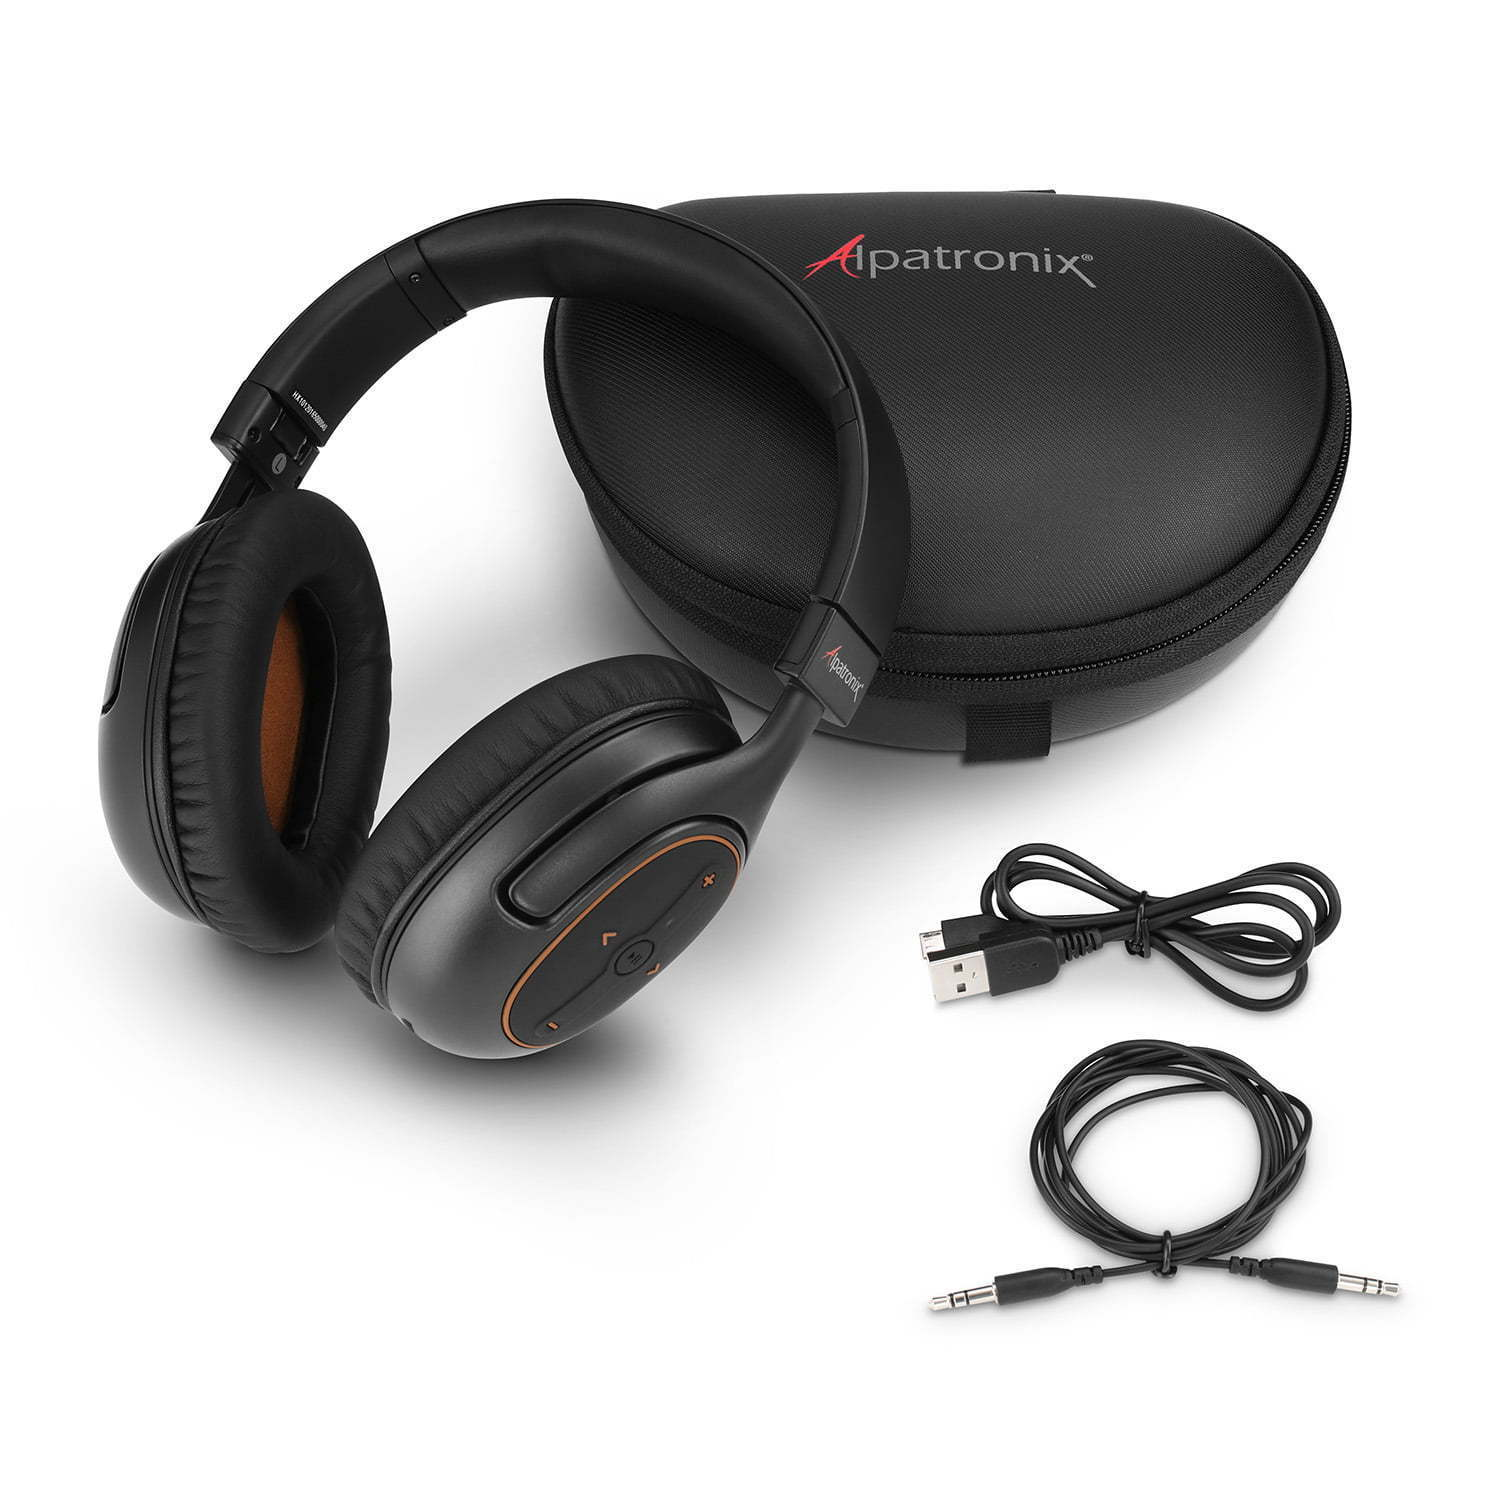 Picture of a headphone set